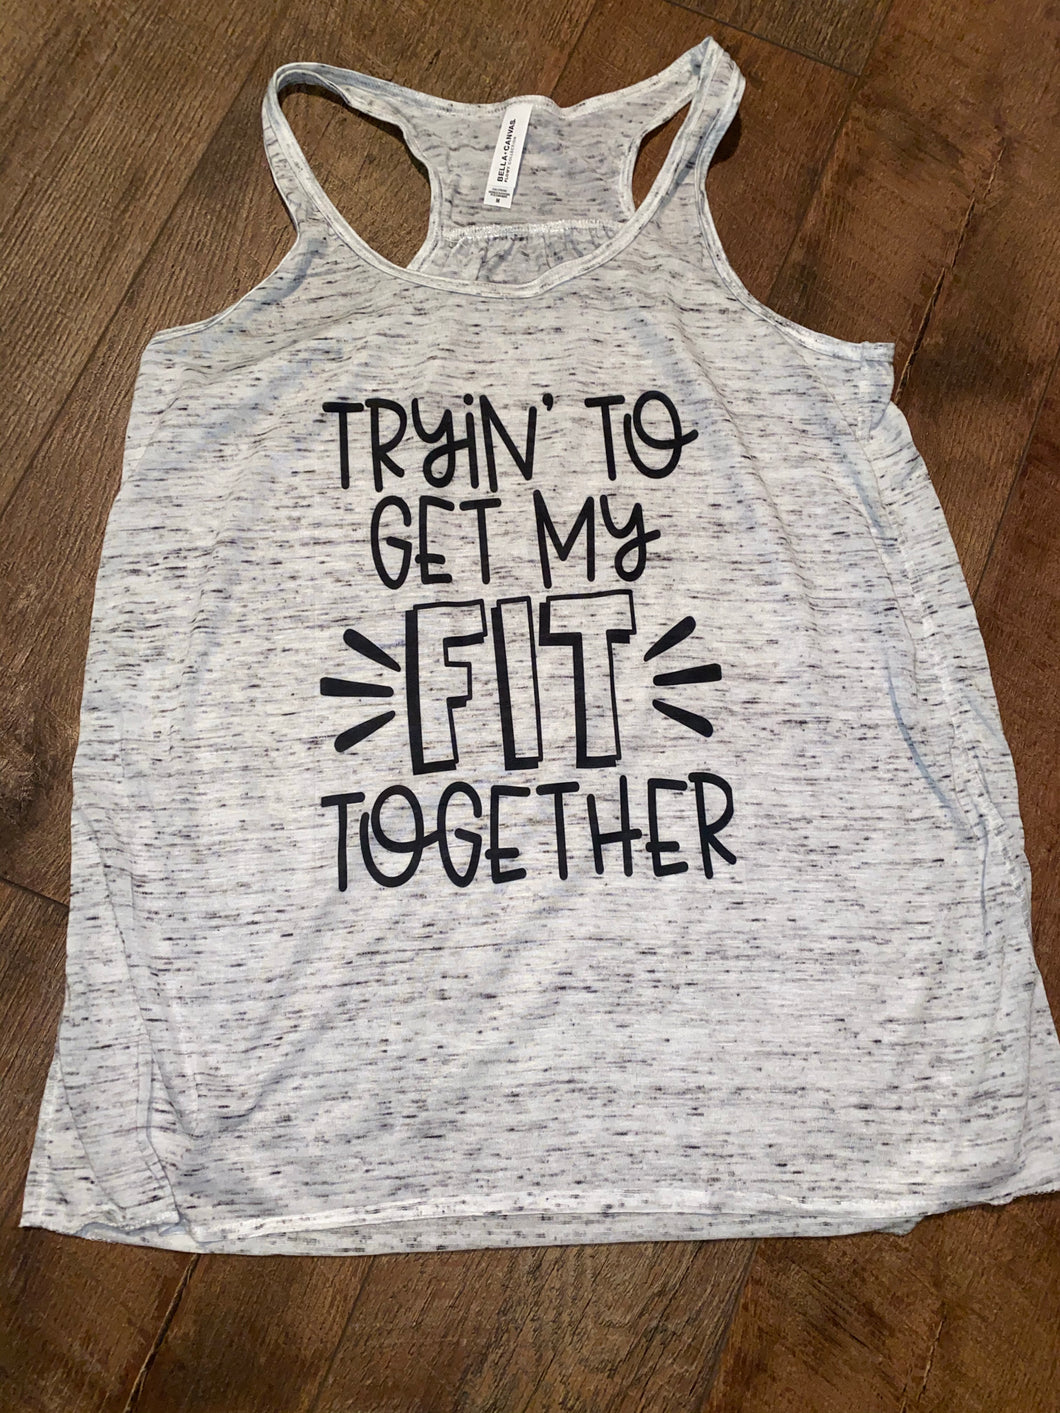 Get My Fit Together Tank